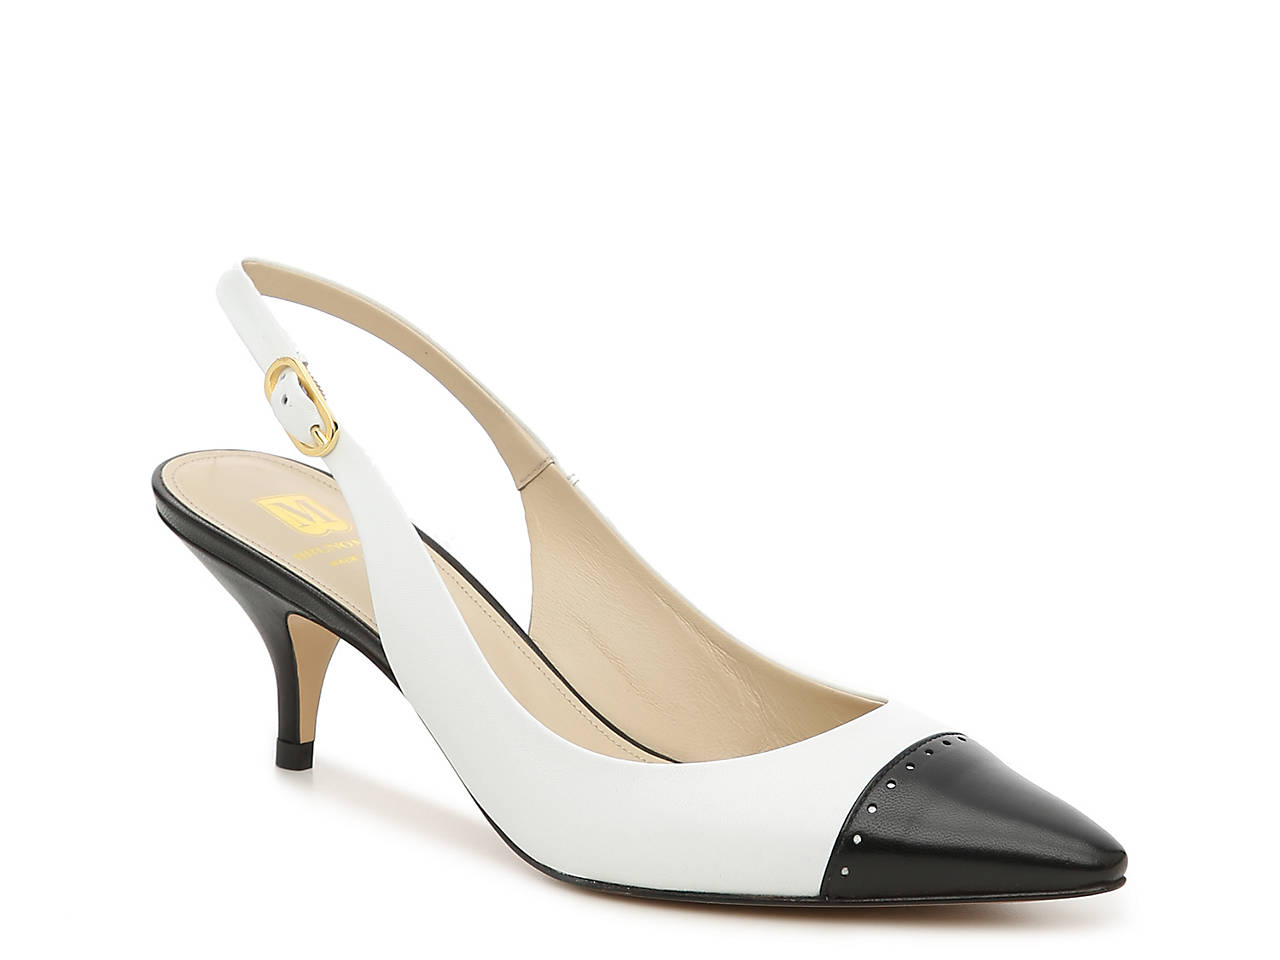 8a41dfb6d0 M by Bruno Magli - Luxury Nada Pump Women's Shoes | DSW